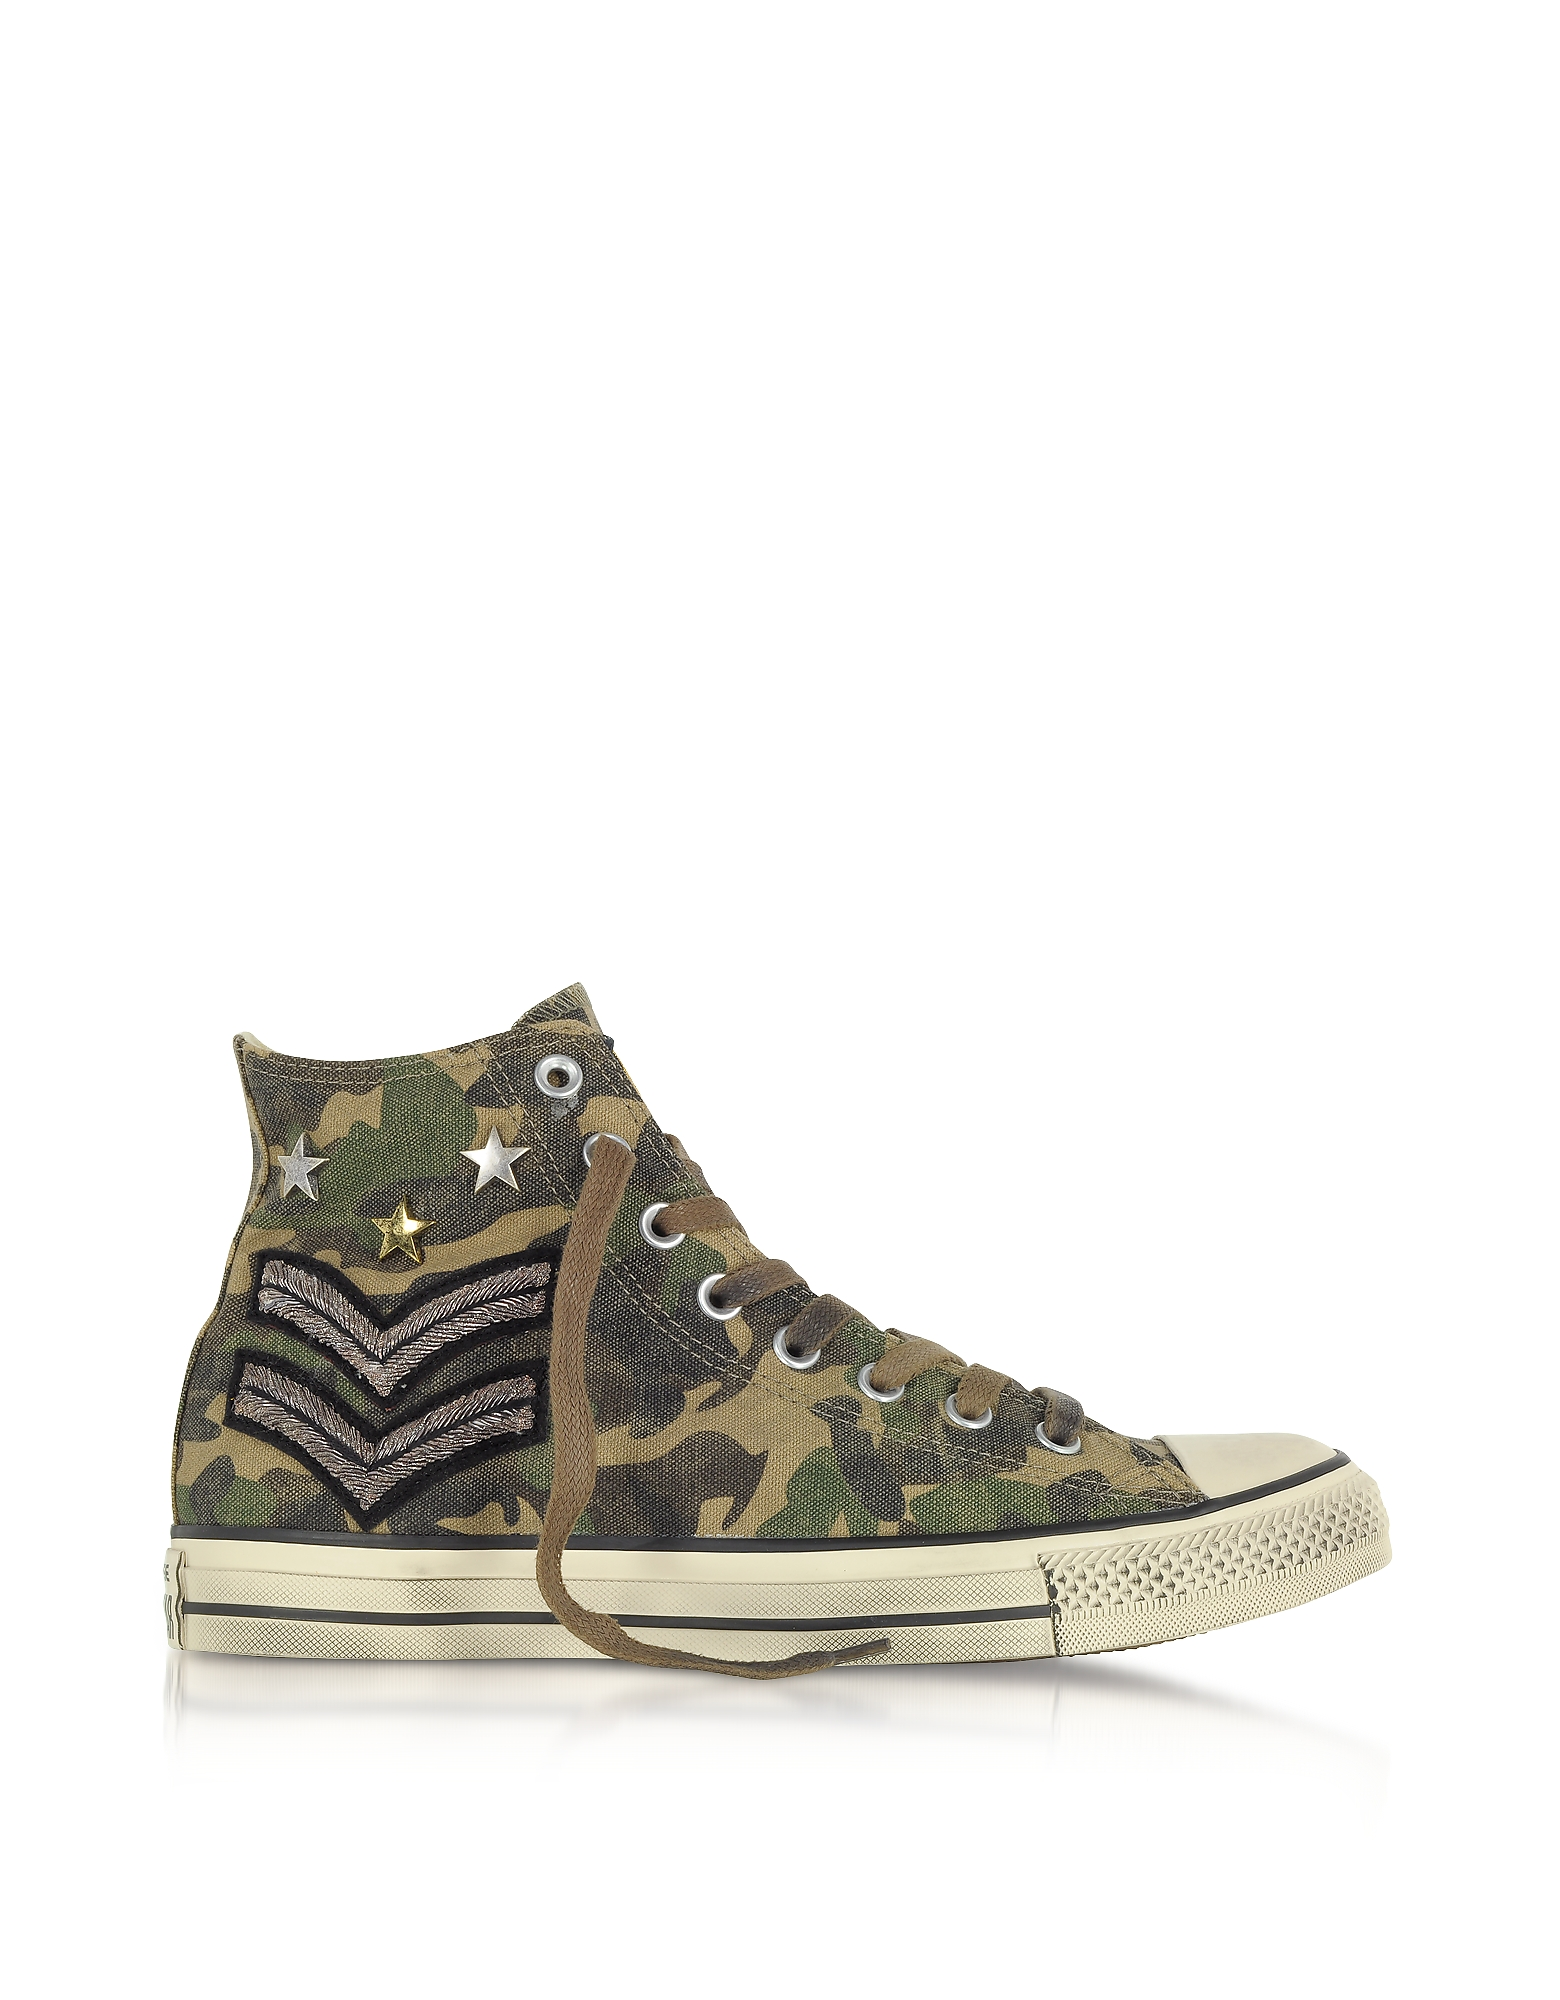 Converse Limited Edition Shoes, Chuck Taylor All Star High Military Patchwork Canvas LTD Unisex Snea